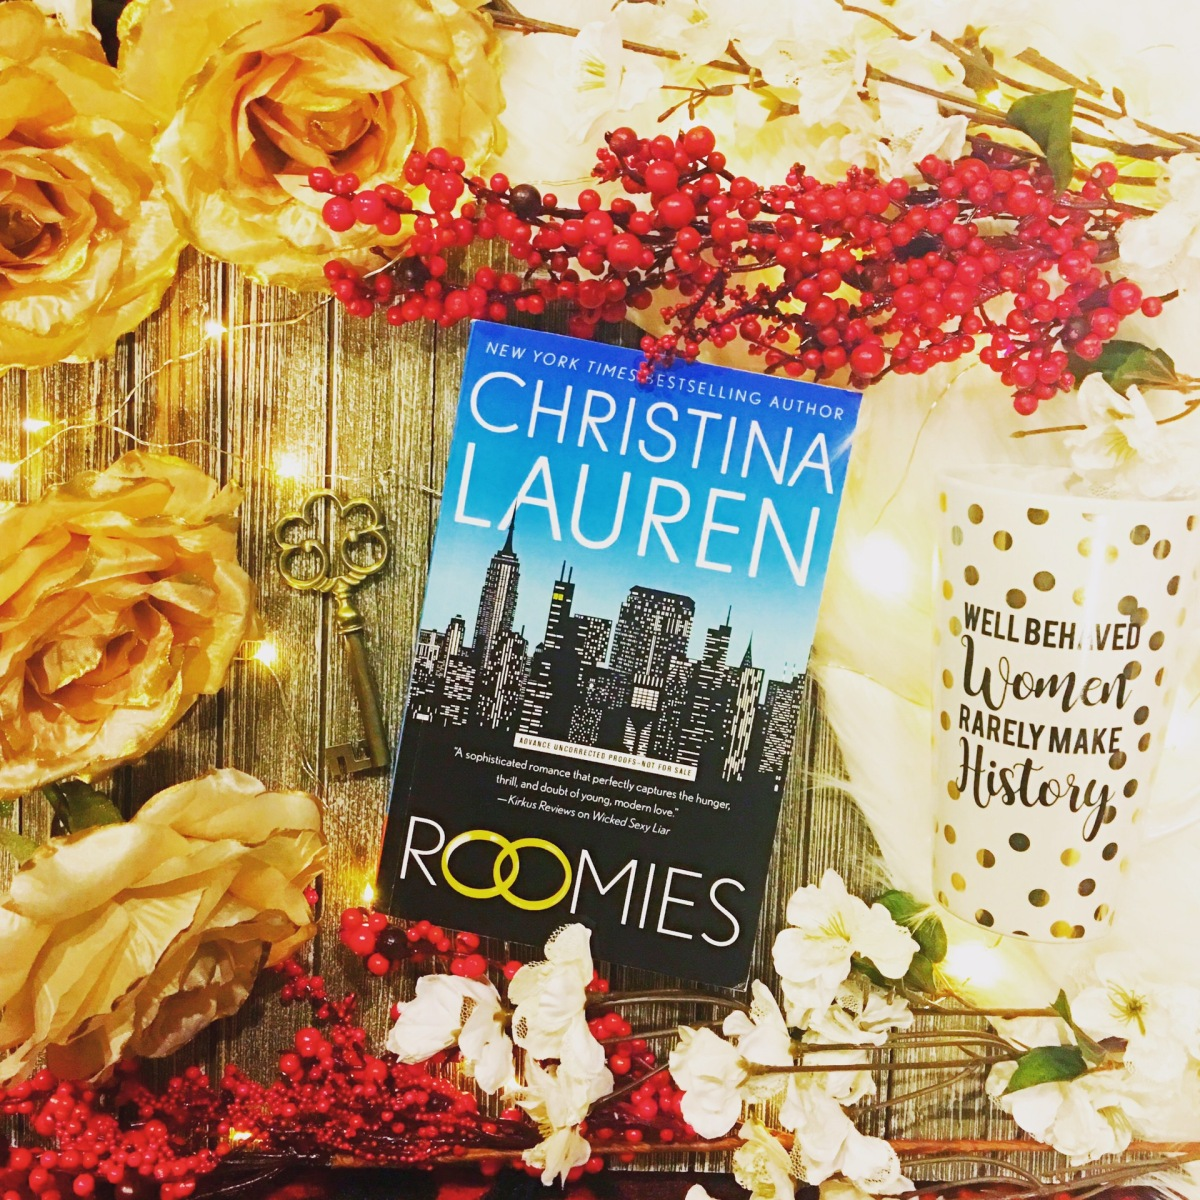 Review - ROOMIES by Christina Lauren